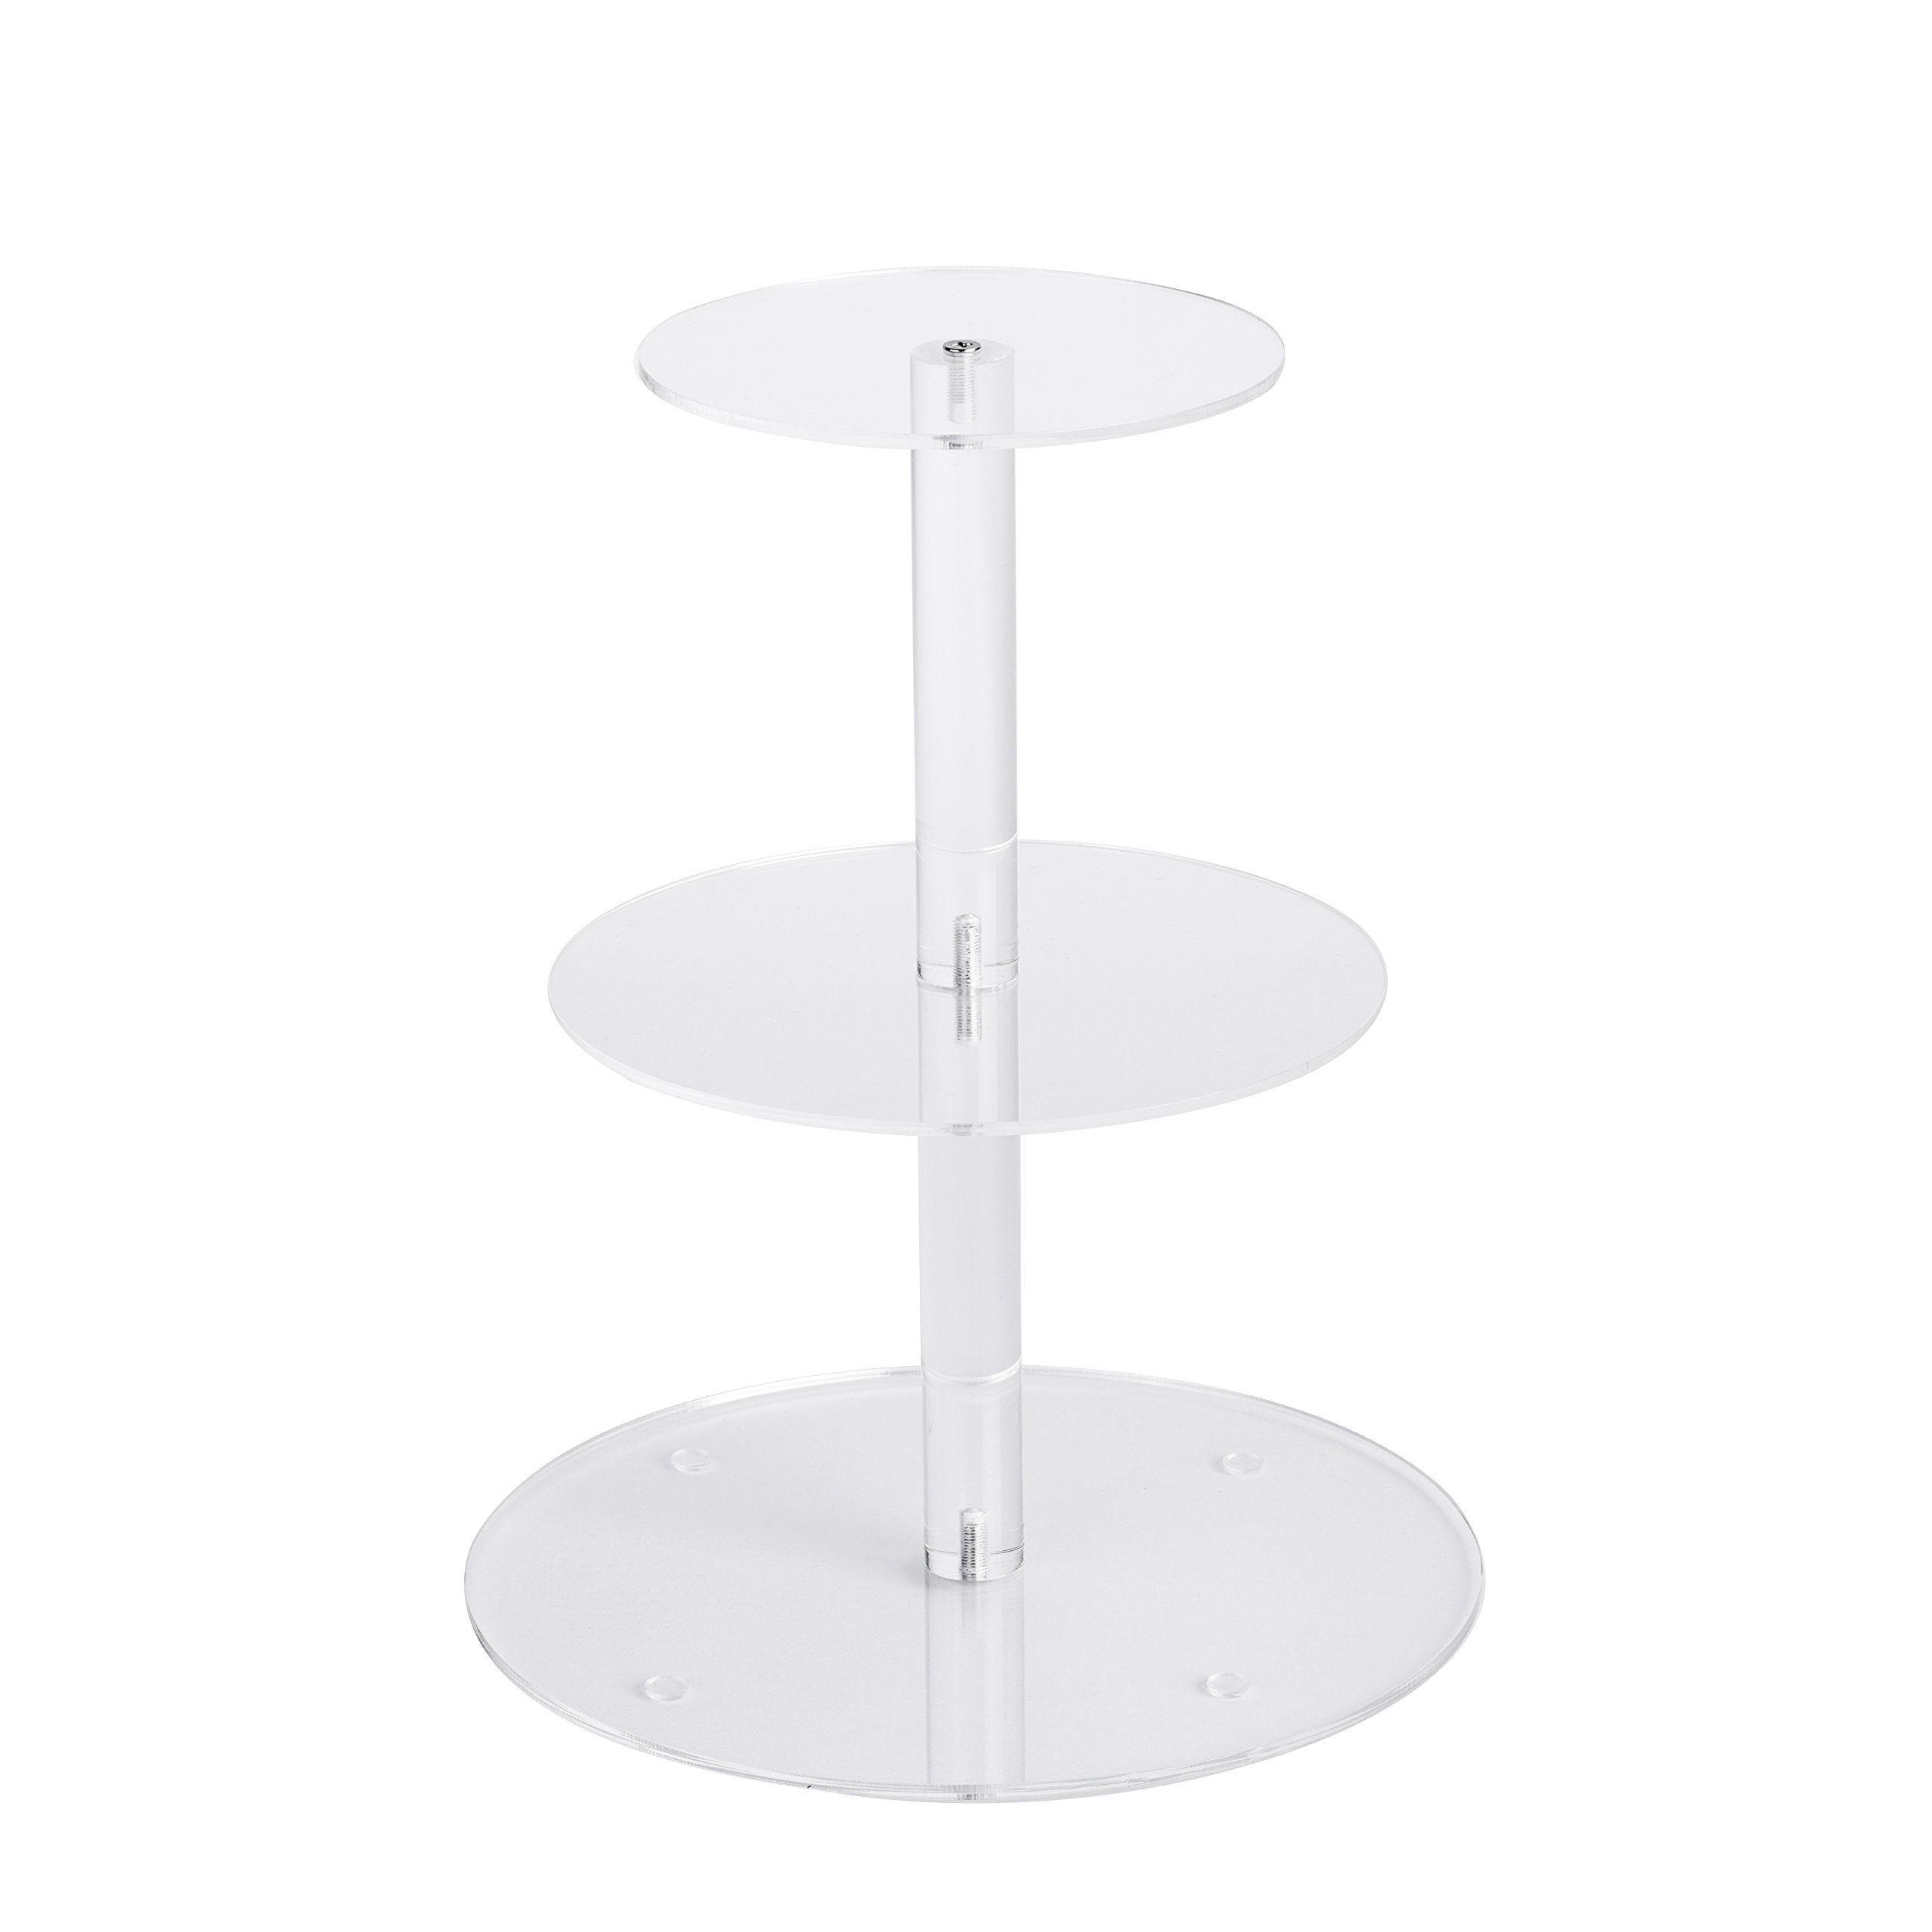 YestBuy 3 Tier Round Wedding Party Acrylic Cake Cupcake Tree Tower Maypole Display Stand 1 pc /Pack (3 Tier Round(6'' between 2 layers))